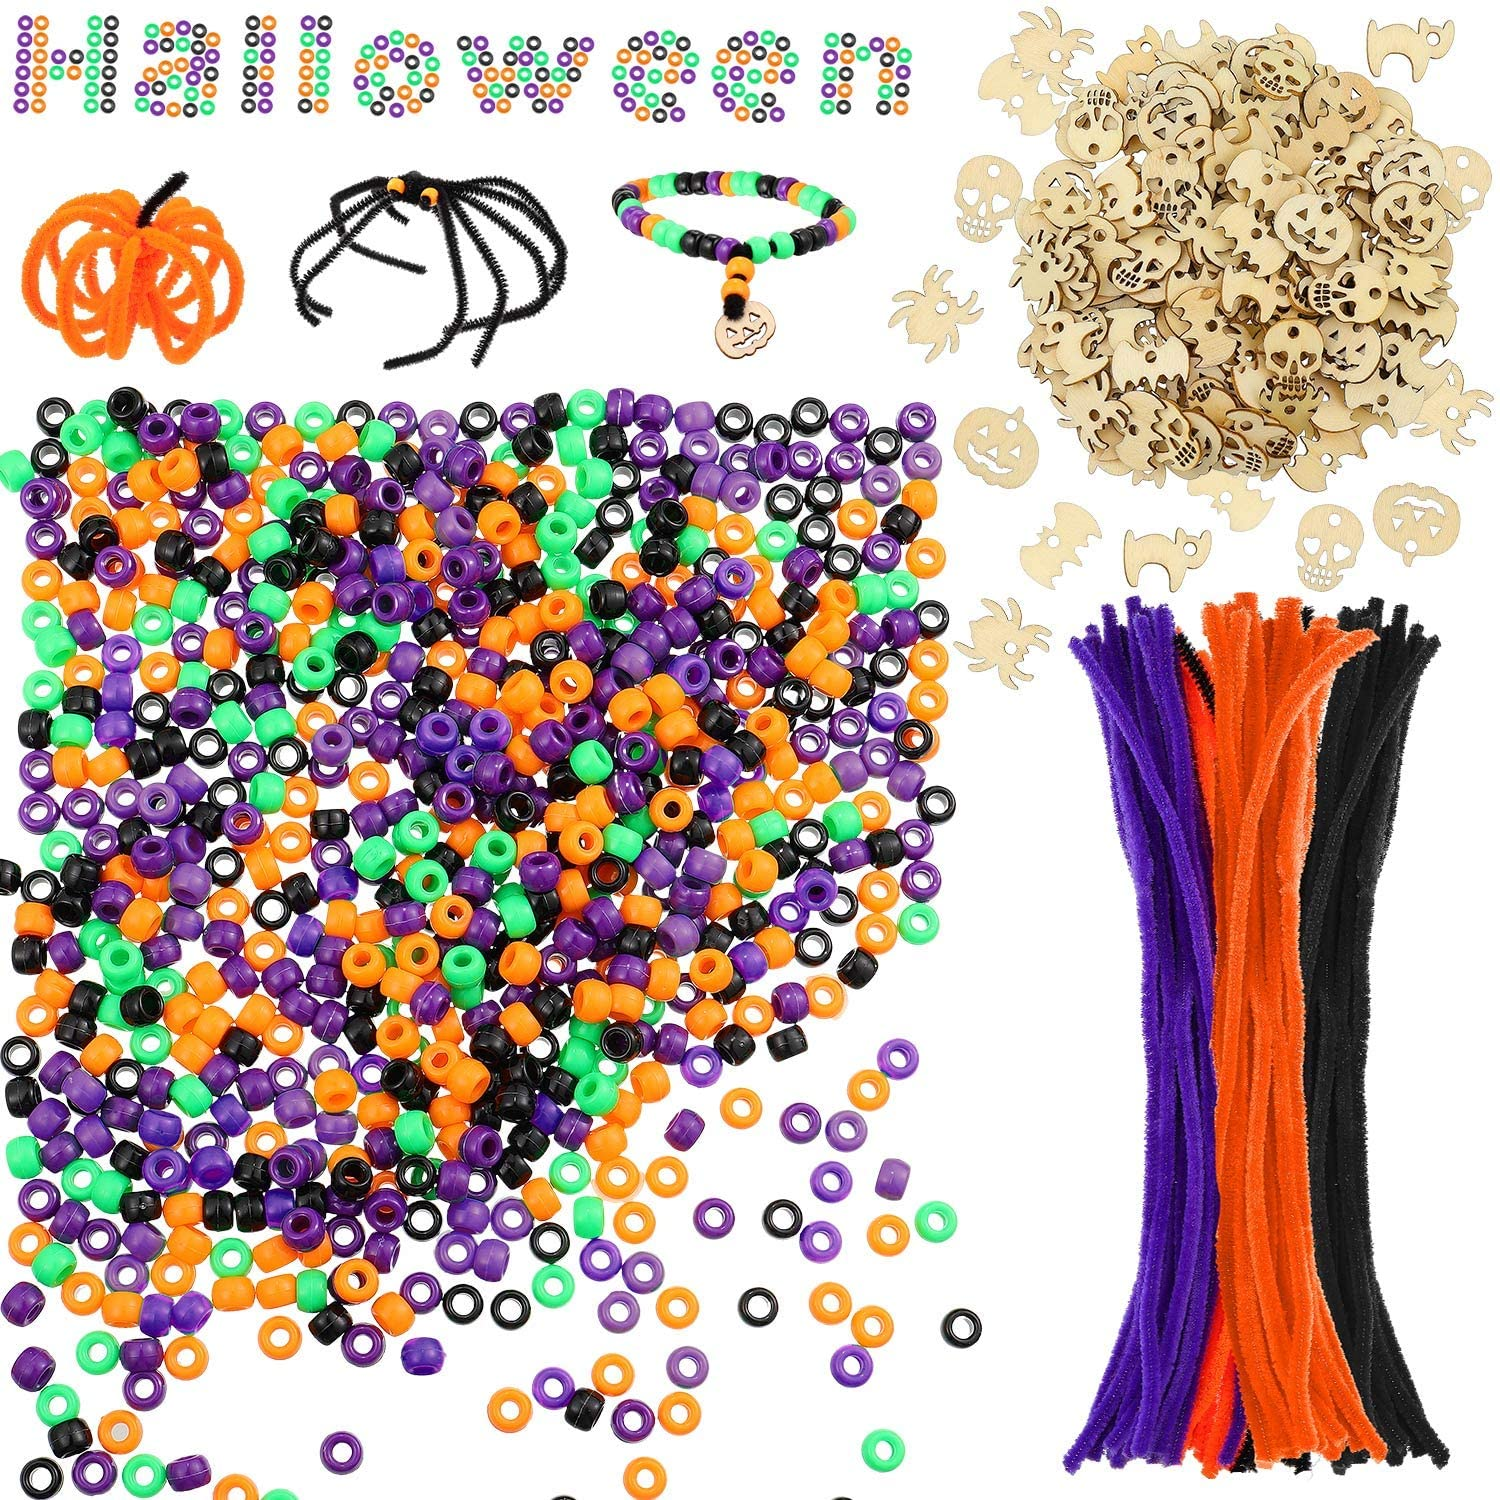 Halloween Pony Beads Plastic Beads Craft, Beads Pipe Cleaners Chenille Stems for Halloween Craft and Art DIY Decoration